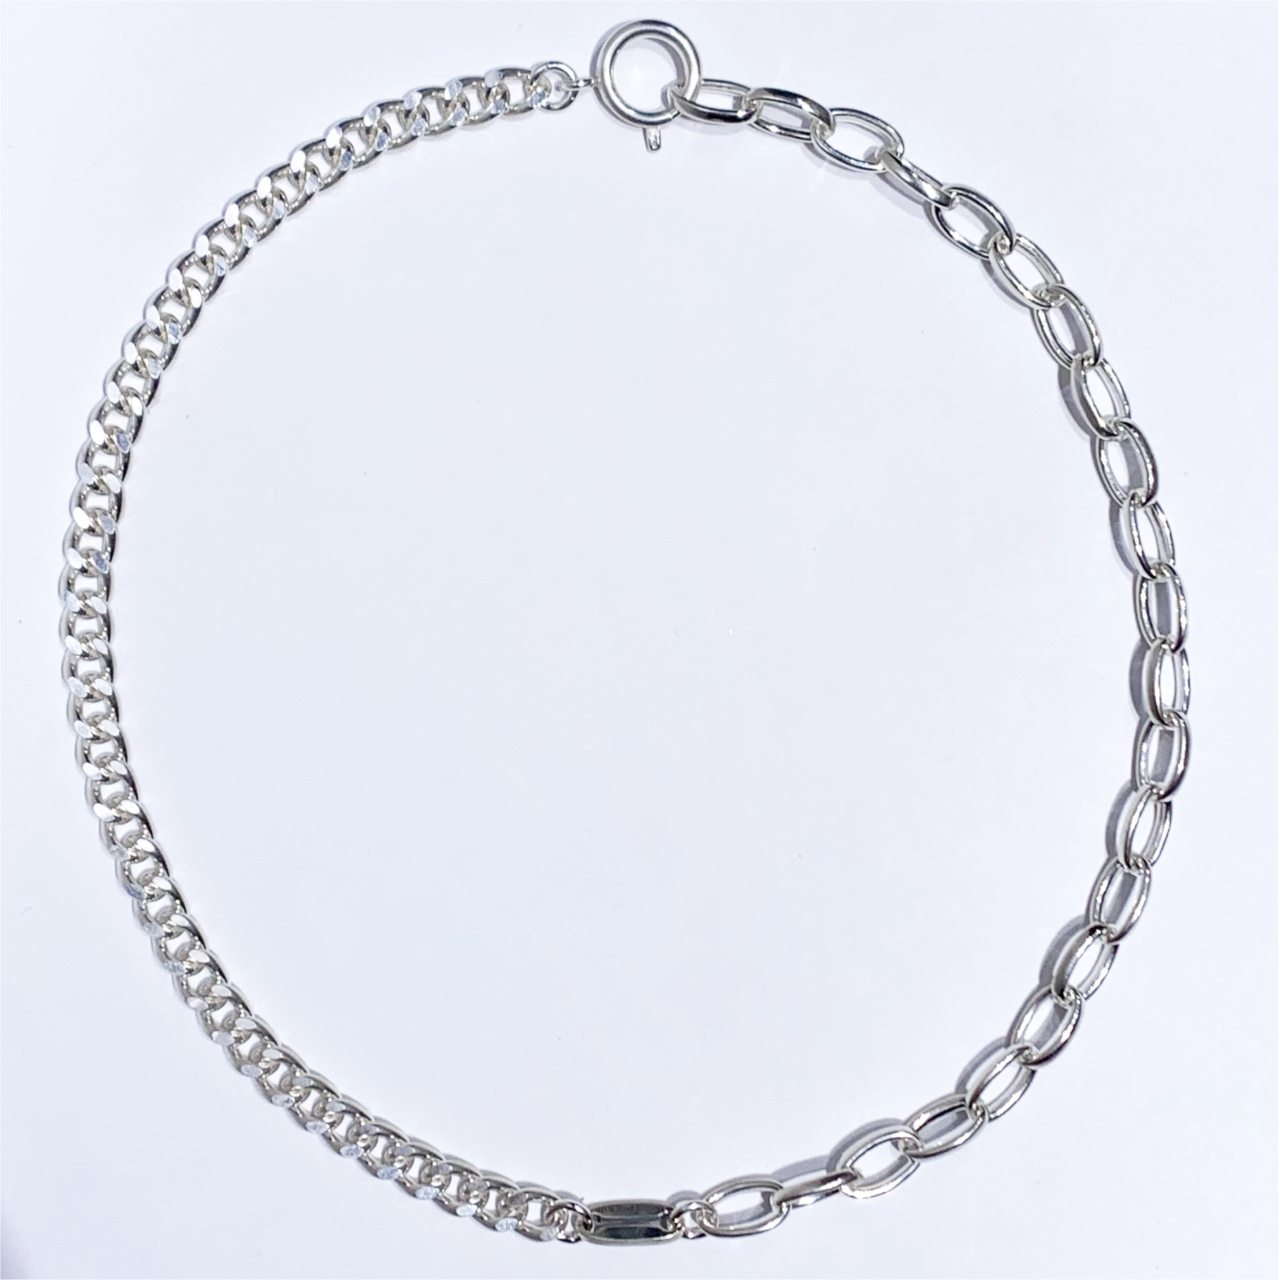 CURB CHAIN & BASIC CHAIN NECKLACE